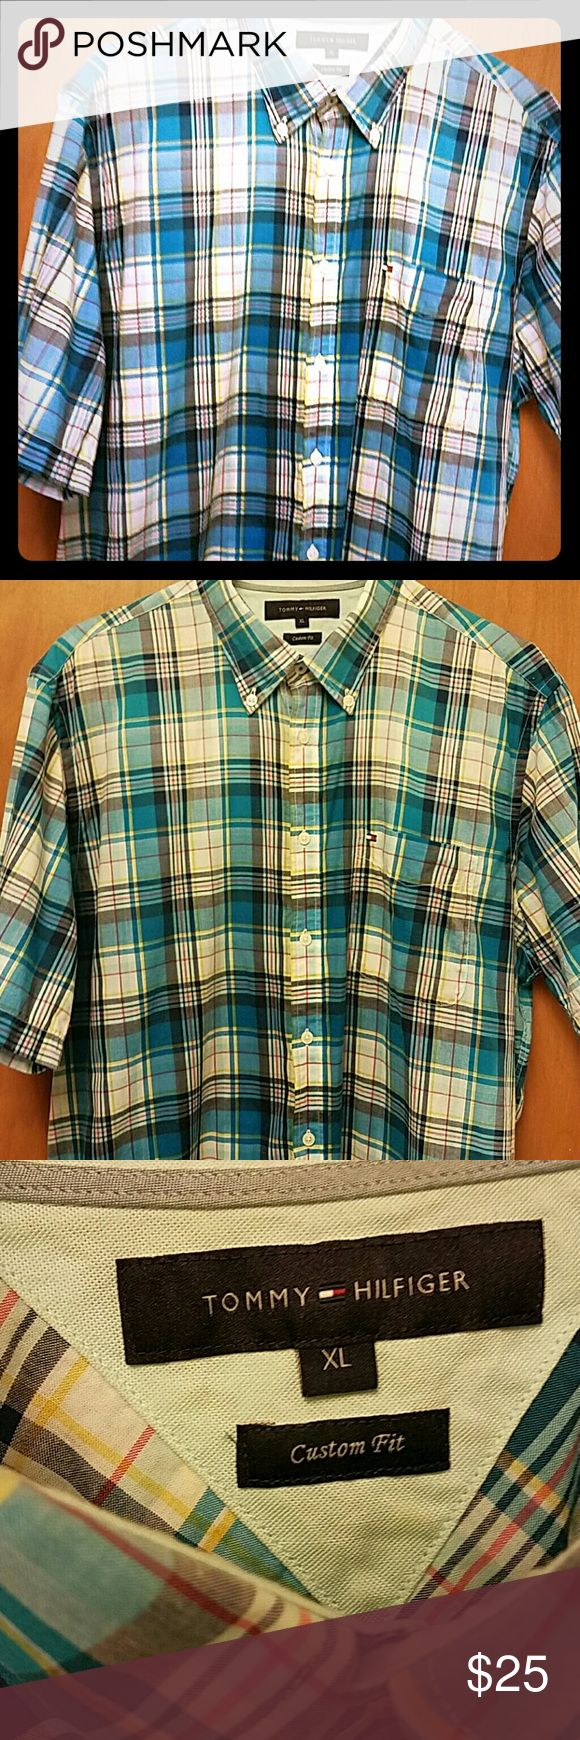 Mens Tommy Hilfiger Button Down Shirt -XL Custom fit Tommy HILFIGER -XL -No defects like new Tommy Hilfiger Shirts Casual Button Down Shirts